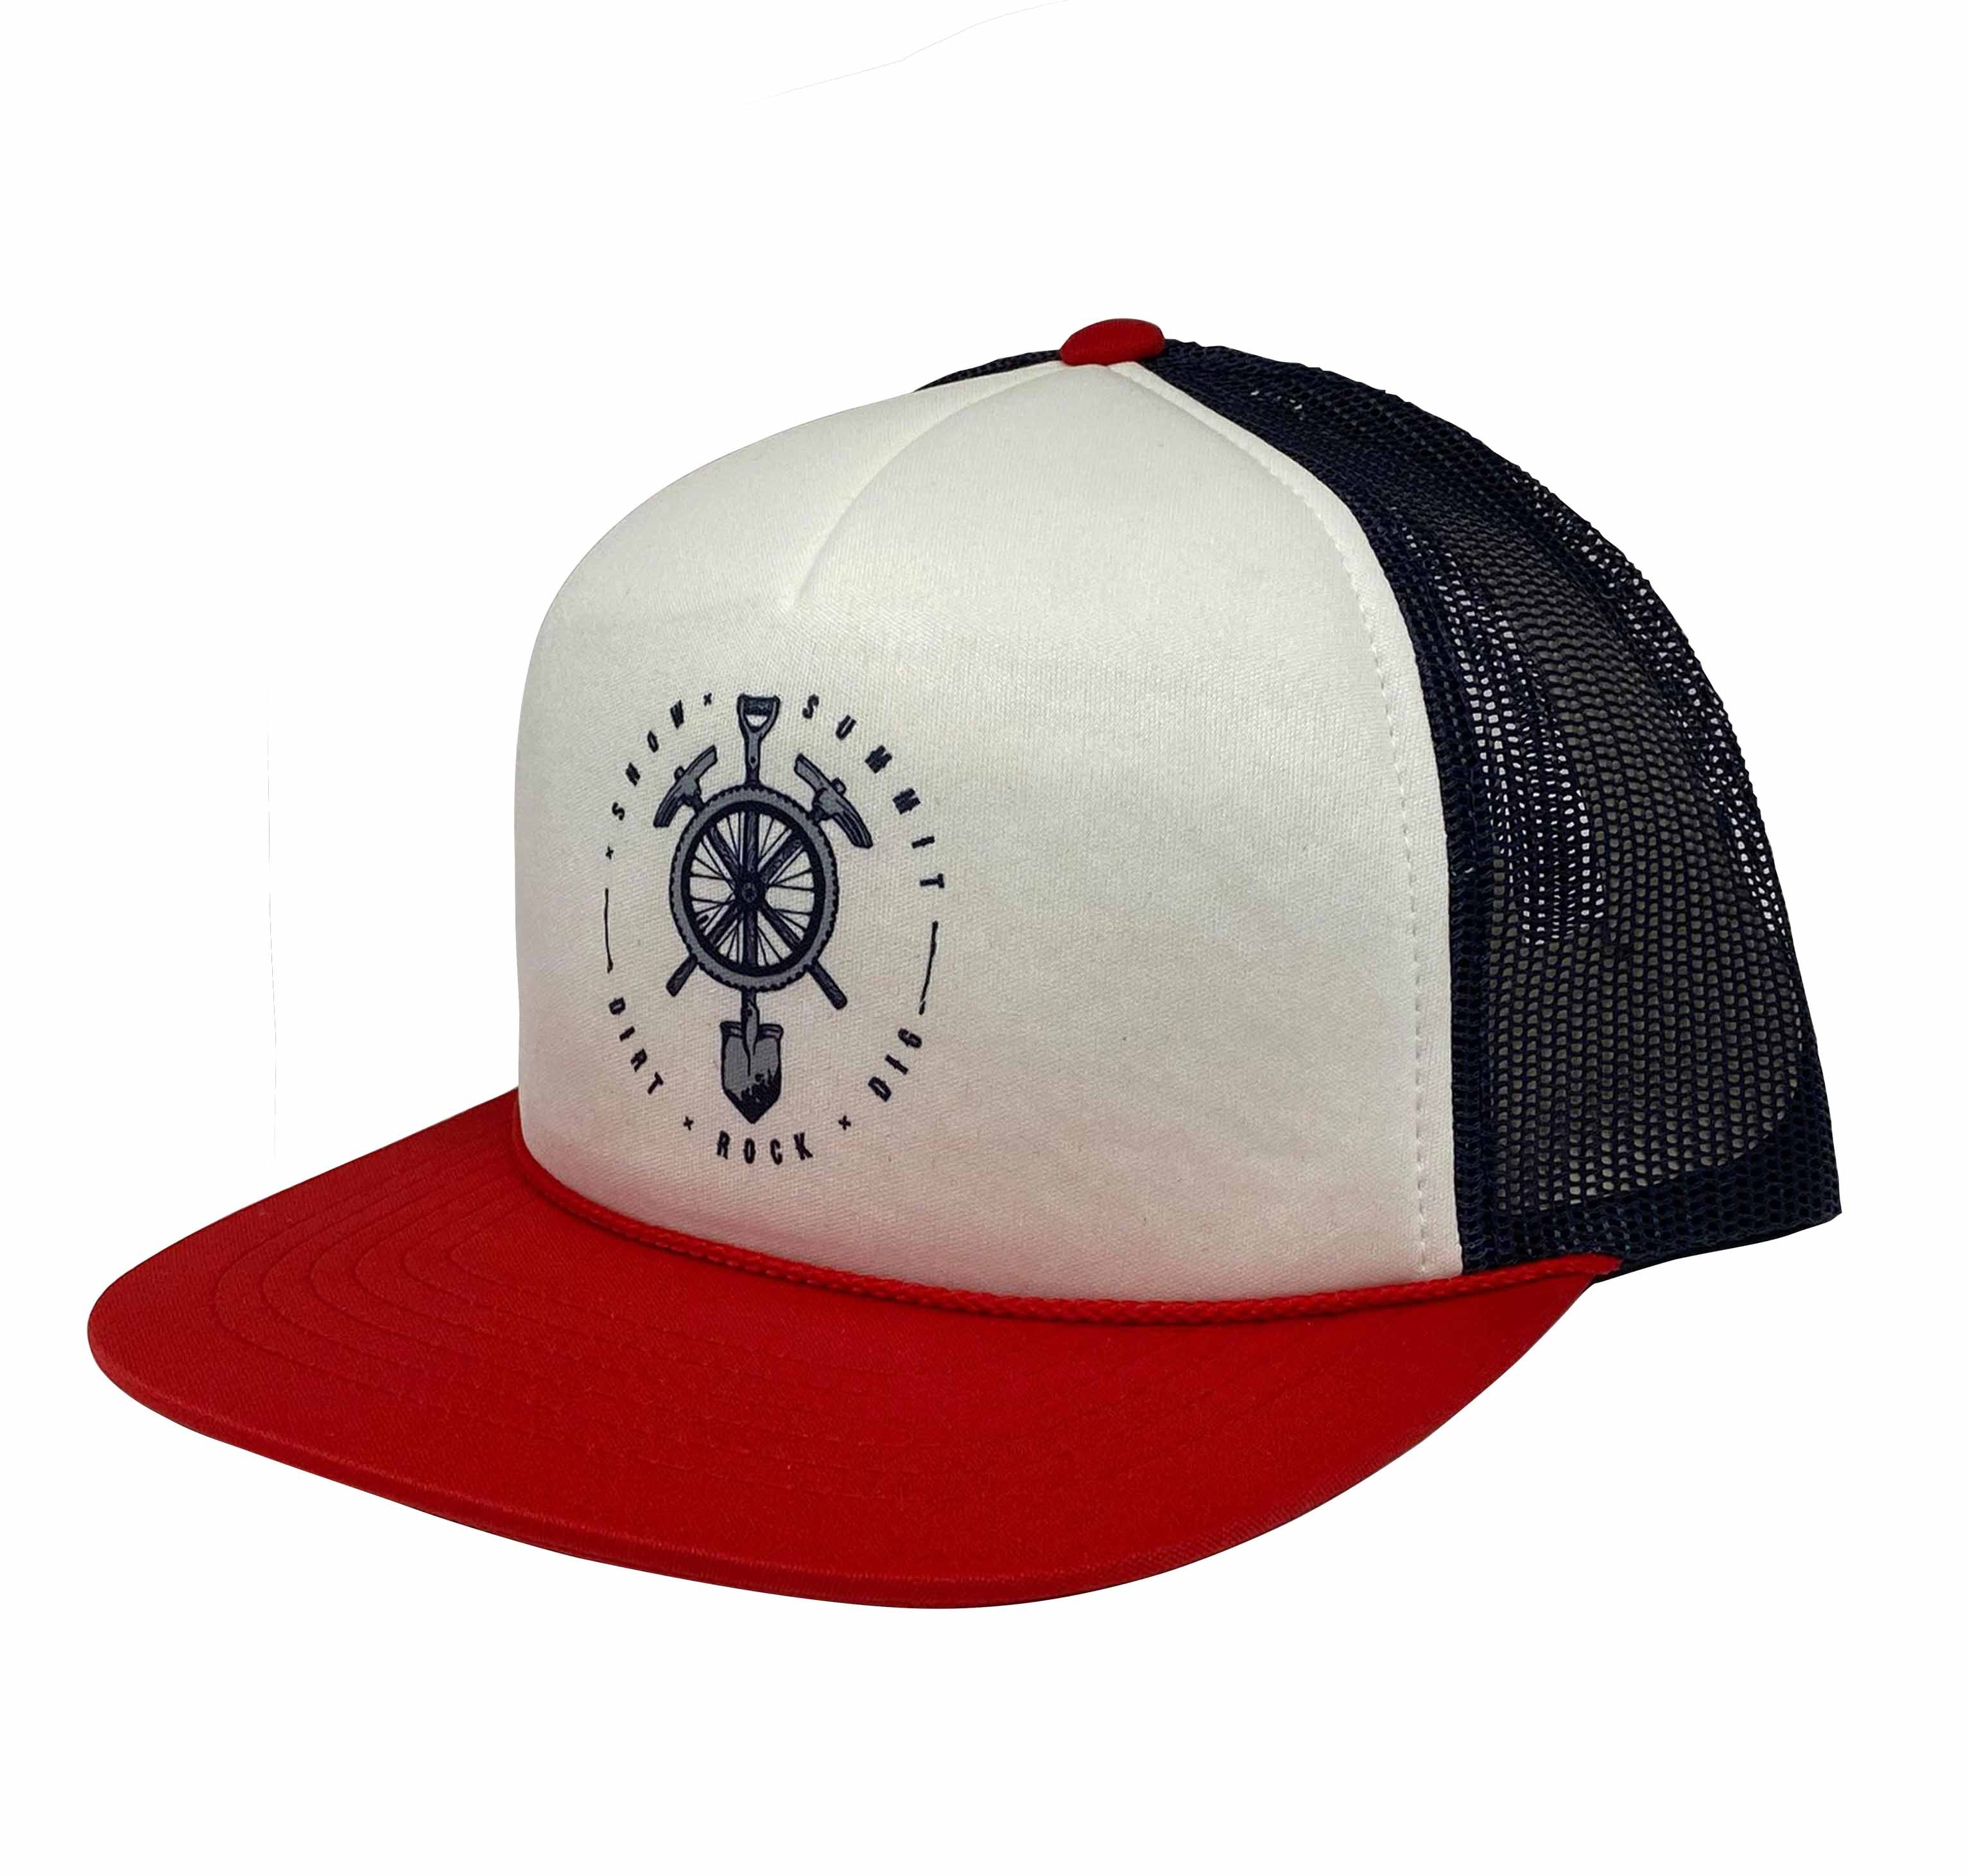 White and Navy Snow Summit branded trucker hate